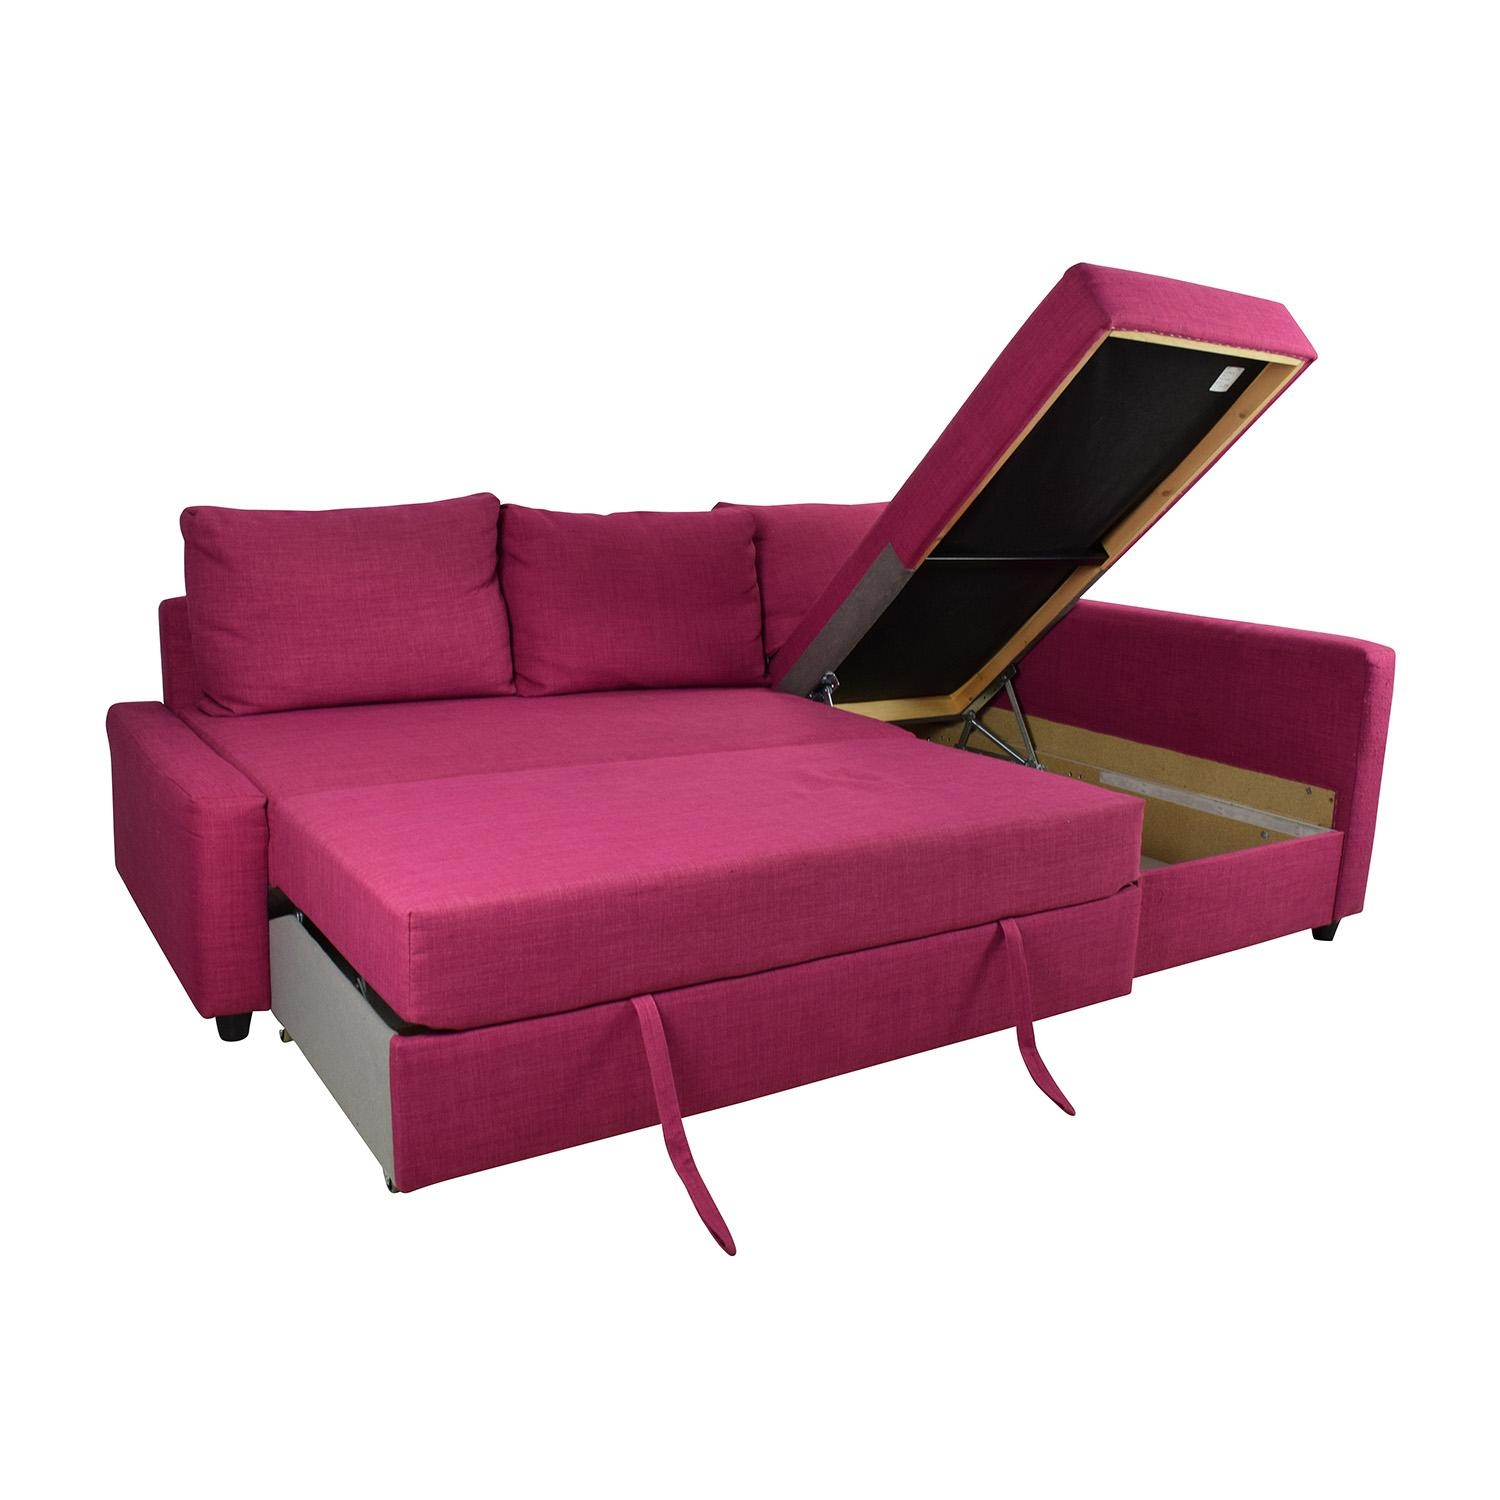 66% Off – Ikea Ikea Friheten Pink Sleeper Sofa / Sofas Pertaining To Sleeper Sofa Sectional Ikea (View 17 of 20)